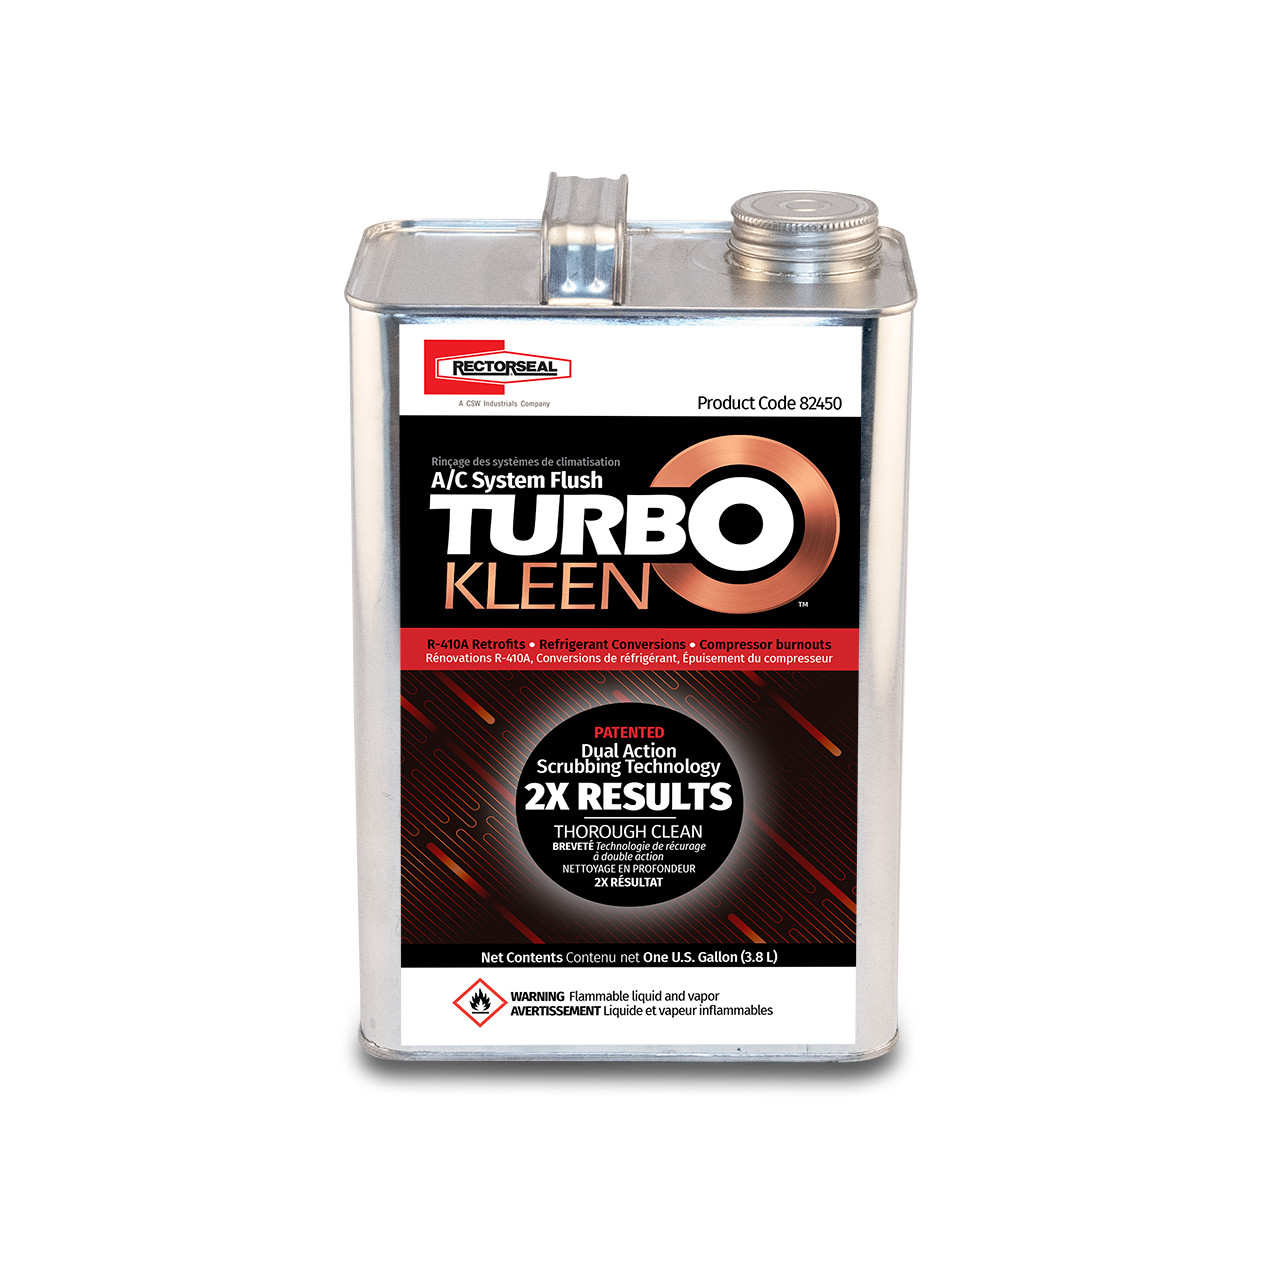 Turbo-Kleen A/C System Flush